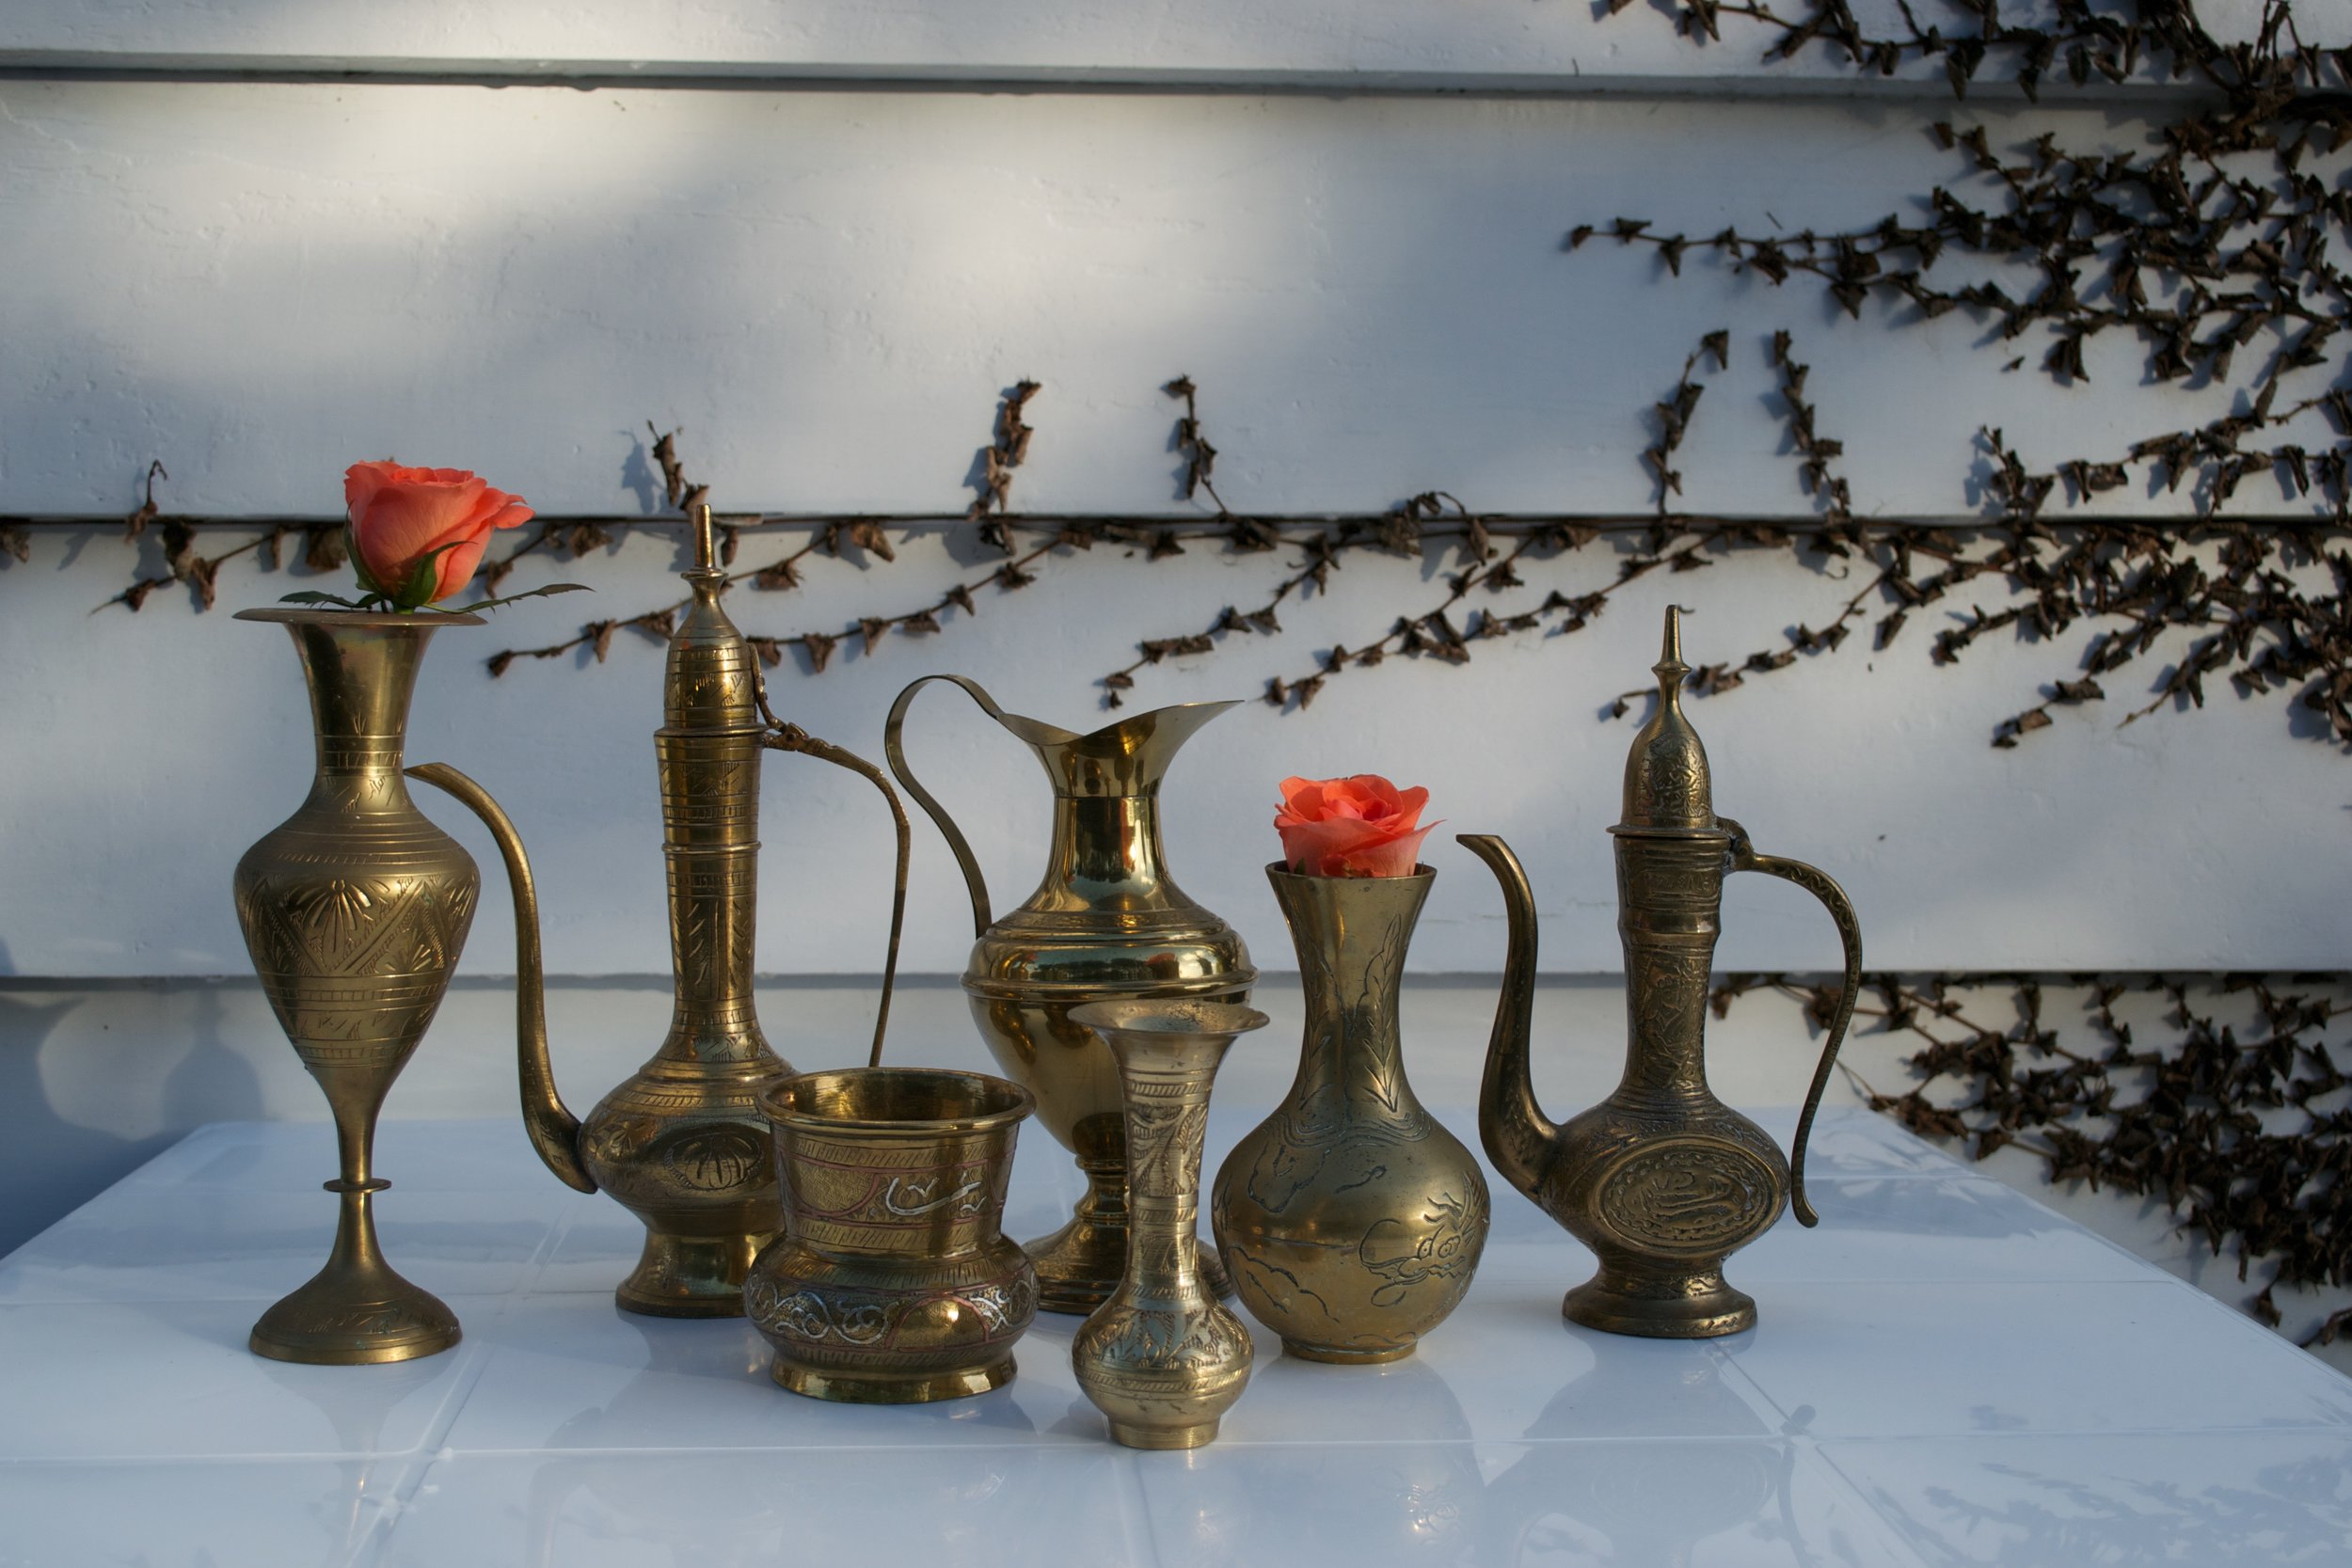 set of moroccan props x1 (the above x7 items, x3 candle holders, x3 small plates, x1 silver tray)